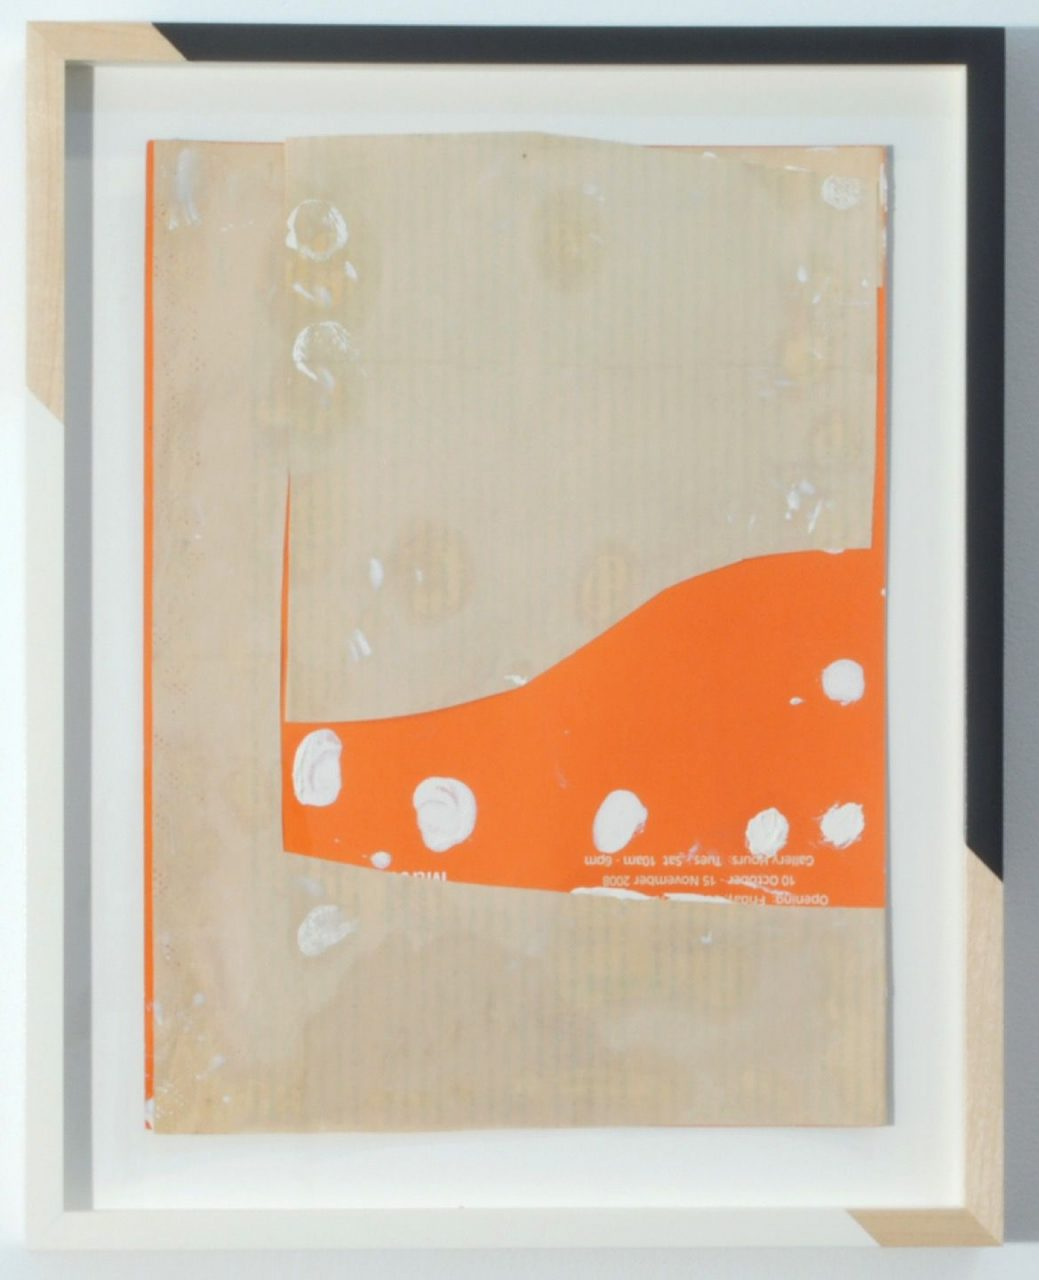 Jim Lee and The Cream Tones | Untitled (Cream/Orange/Kern), 2014